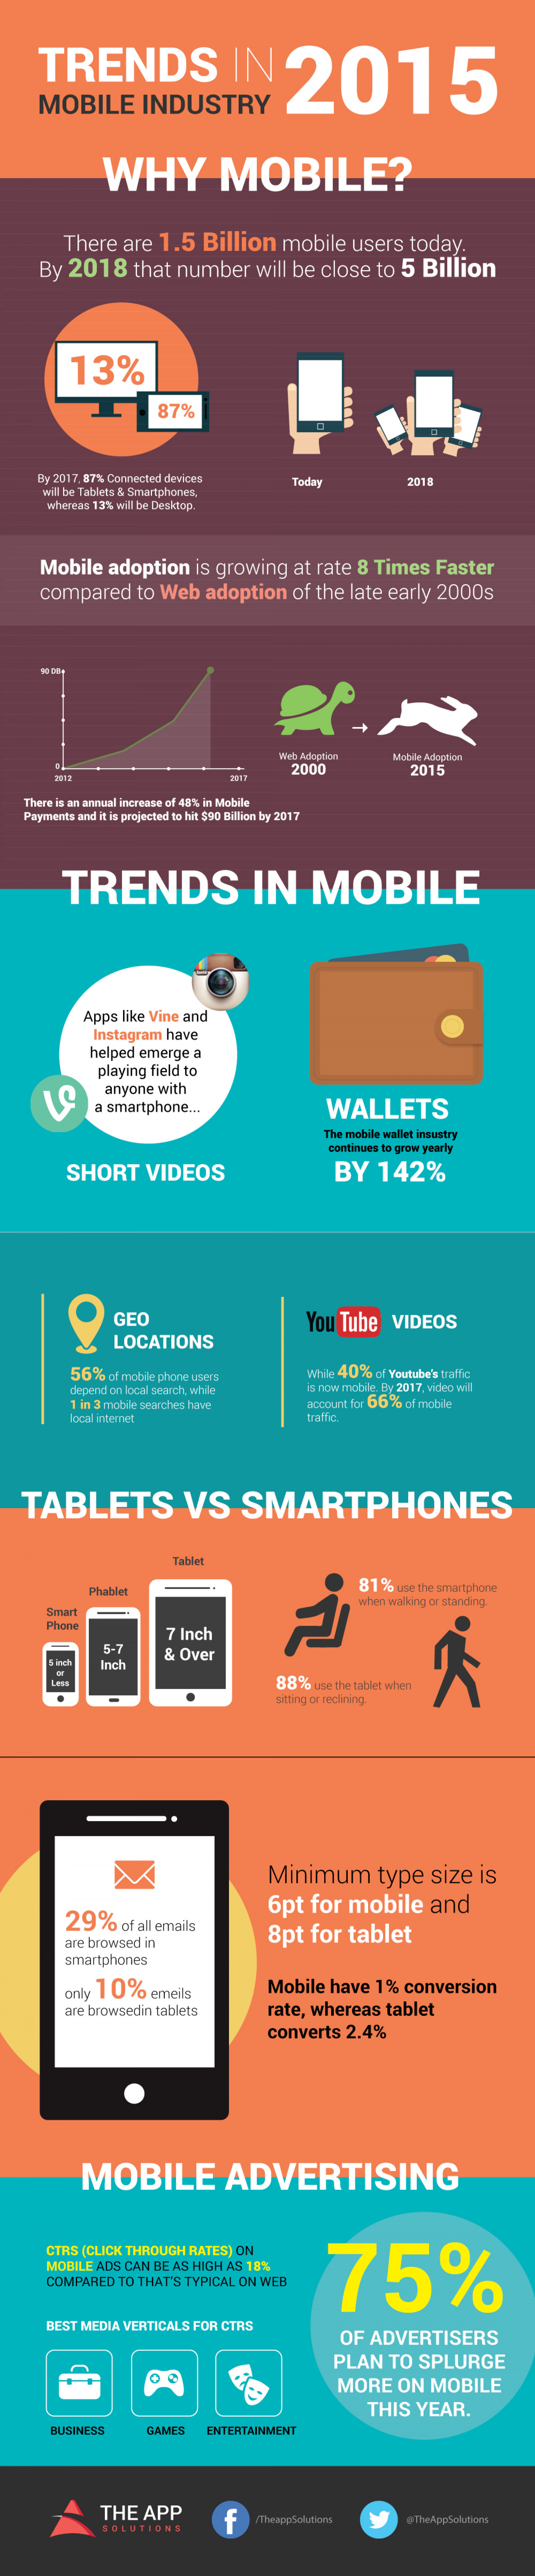 Trends in mobile industry 2015 Infographic